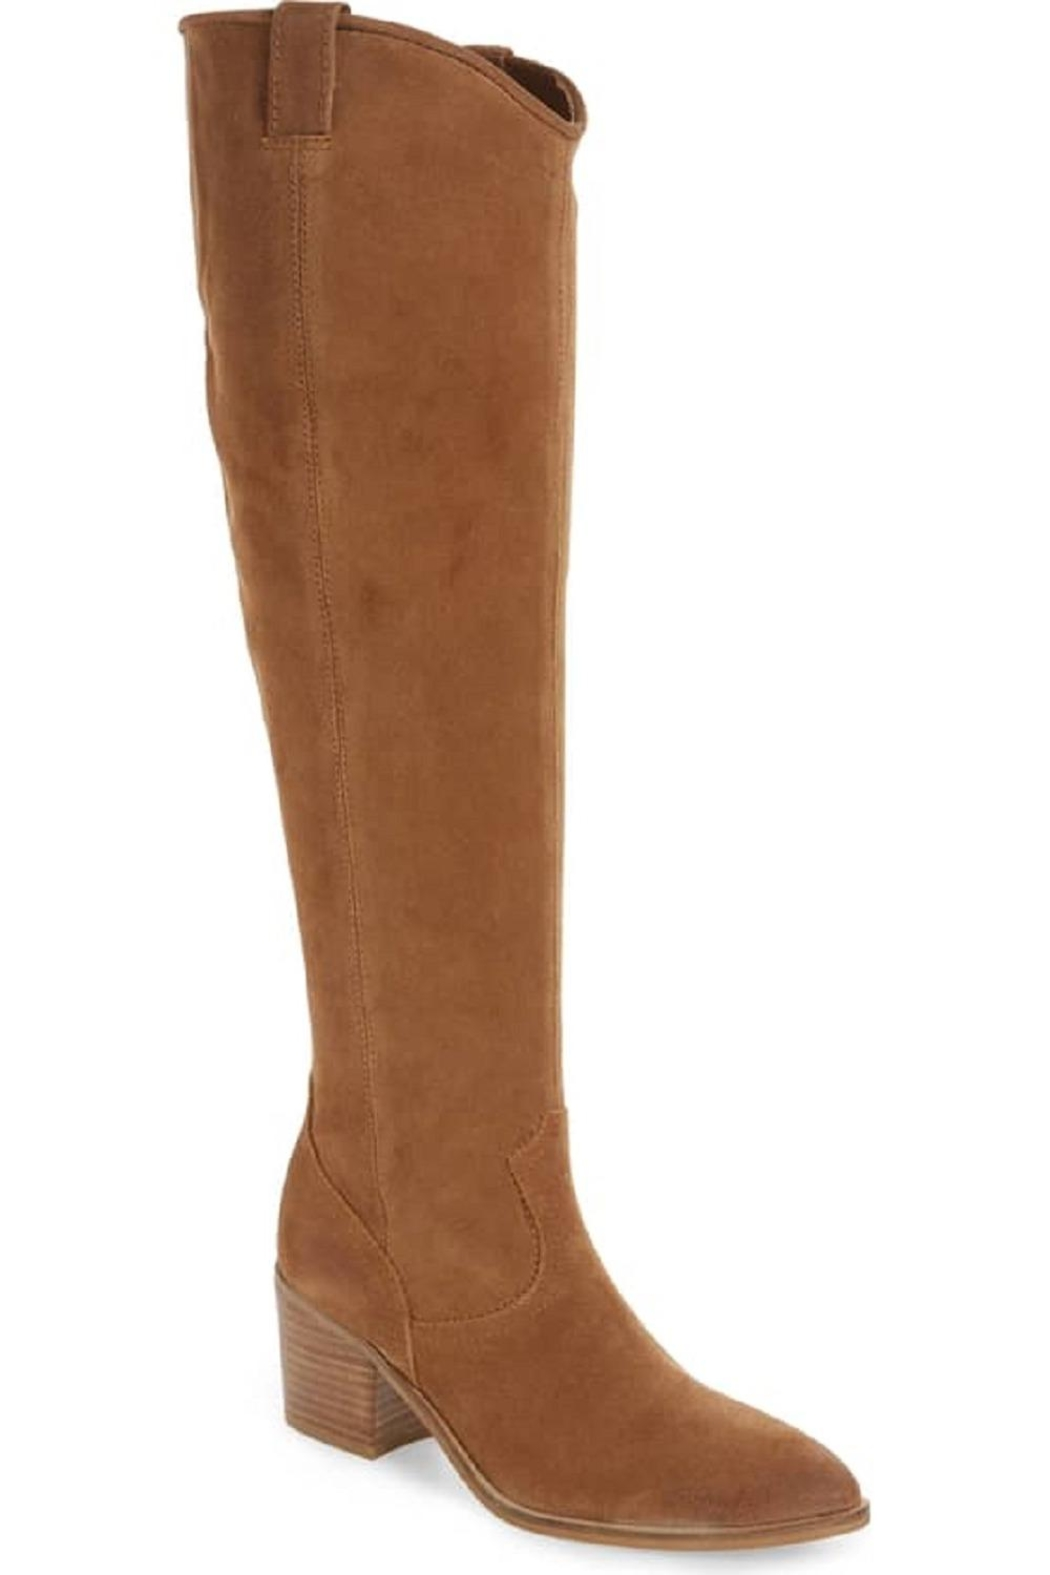 Sbicca vintage collection Over Knee Boot - Main Image